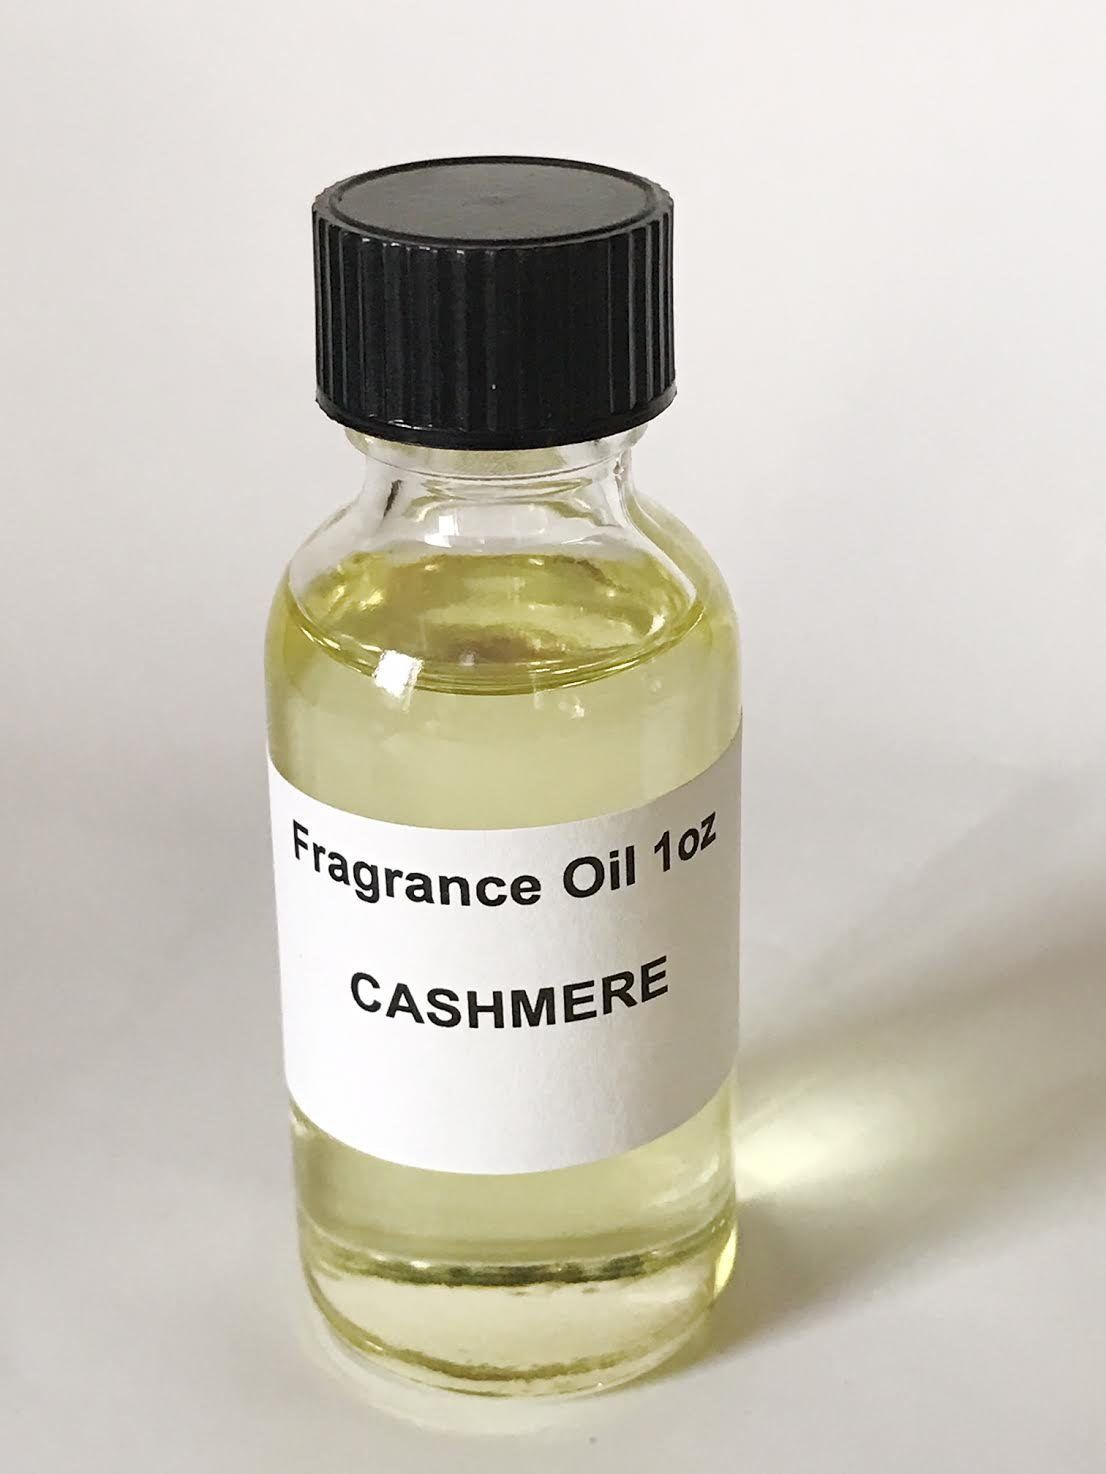 Cashmere Fragrance Oil 1oz Perfume Body Oil Similar To Cashmere Mist Made In The Usa Check This Awesome Produ Paraben Free Products Perfume Fragrance Bottle